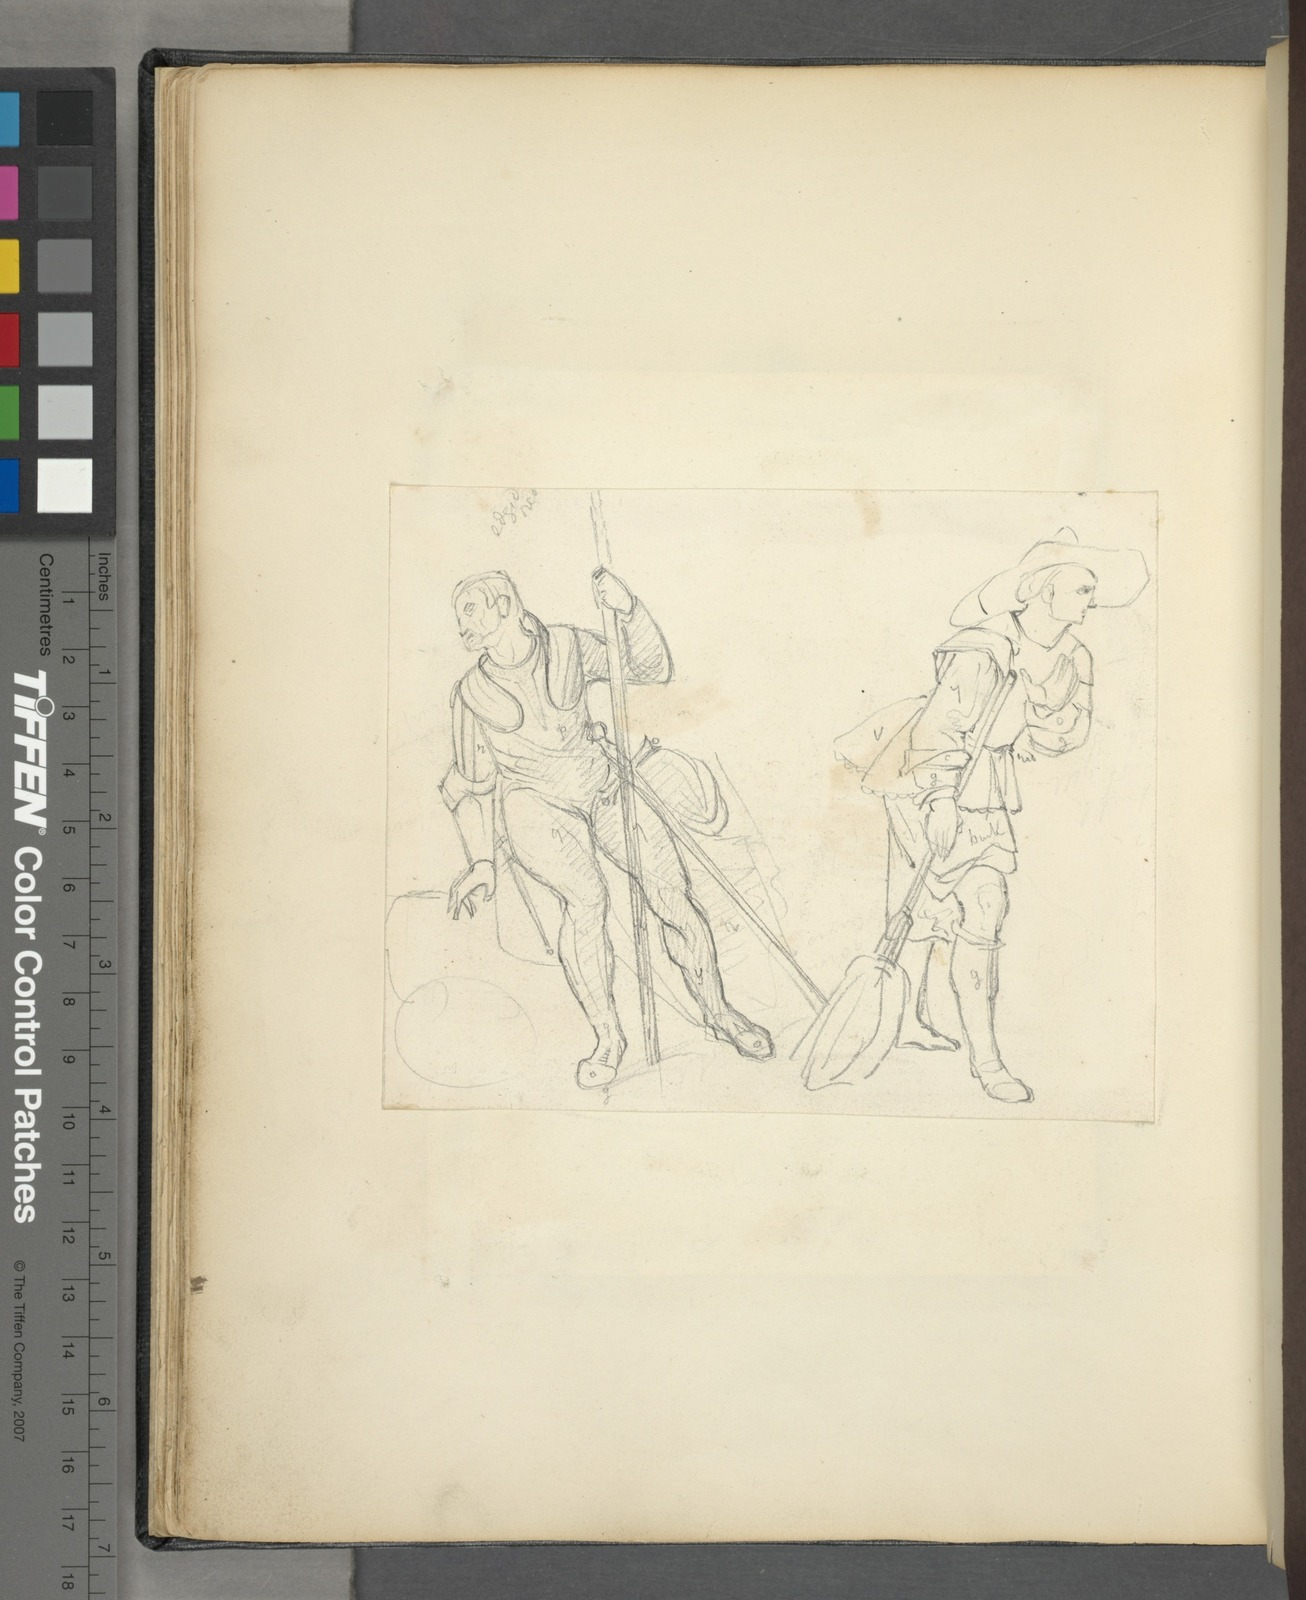 Two figures with various aspects of their garments diagrammed.